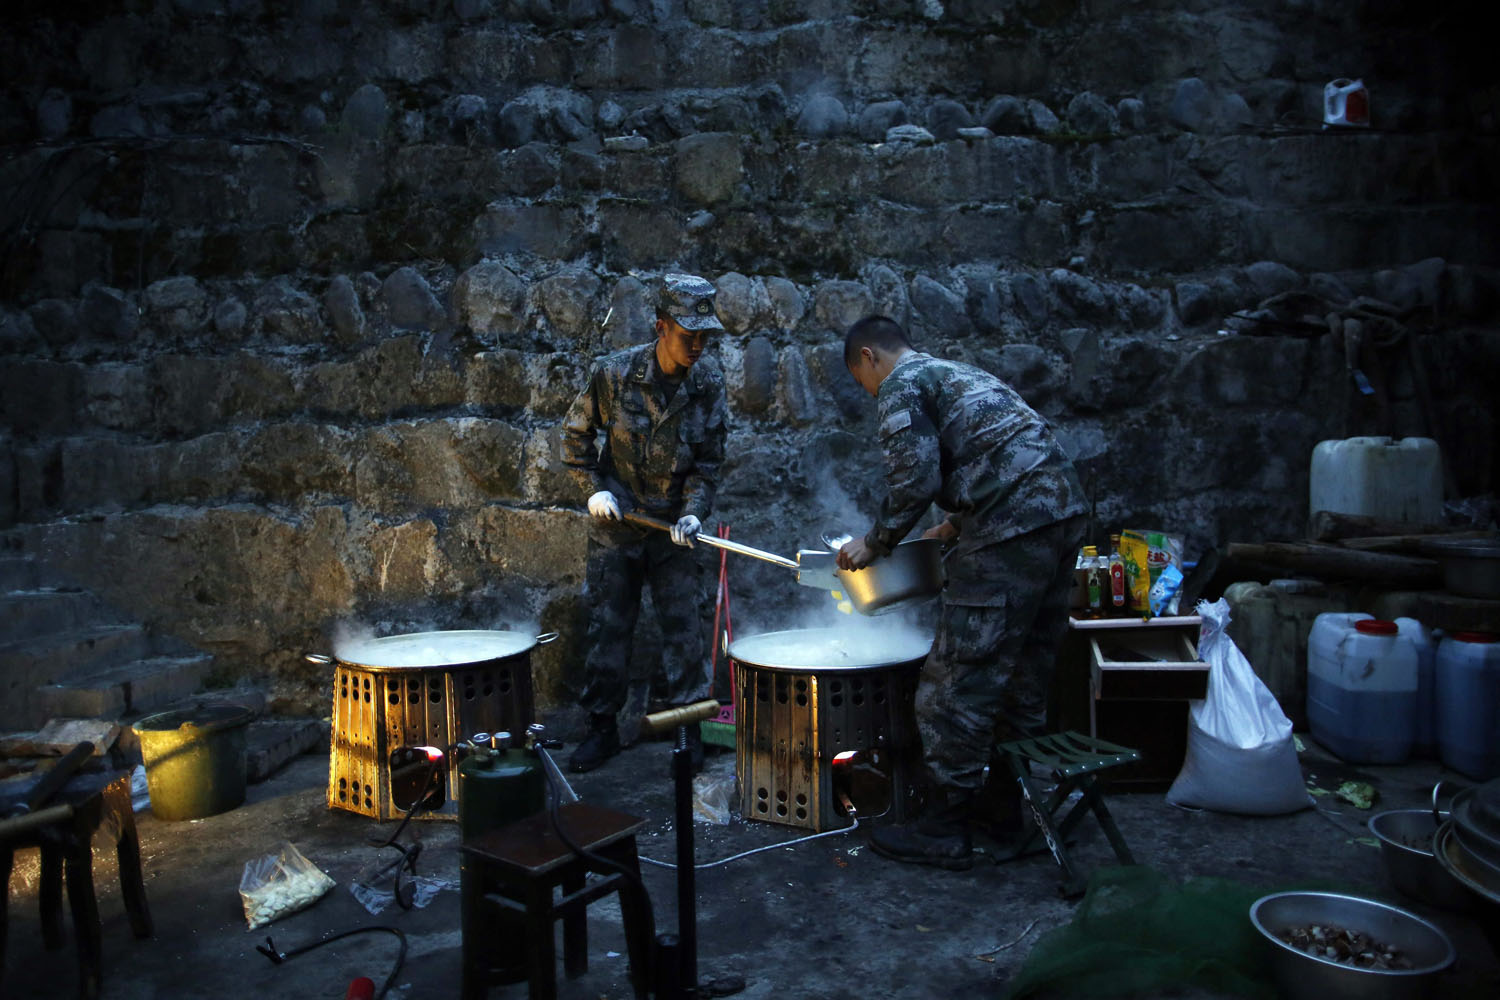 April 23, 2013. Chinese soldiers cook breakfast in a rescue camp in Taiping town, Lushan County, Sichuan Province, China.